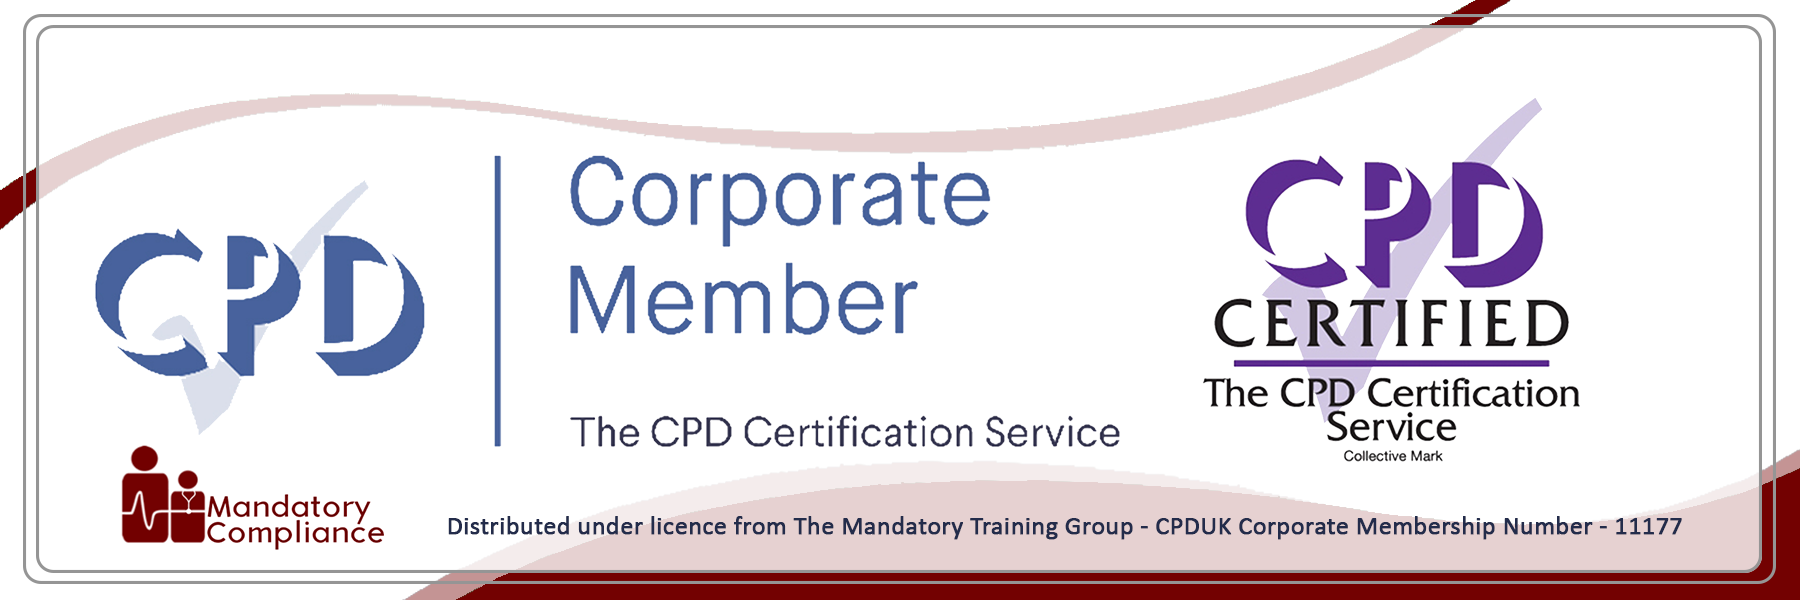 Online GDPR Training - Online Learning Courses - E-Learning Courses - Mandatory Compliance UK-